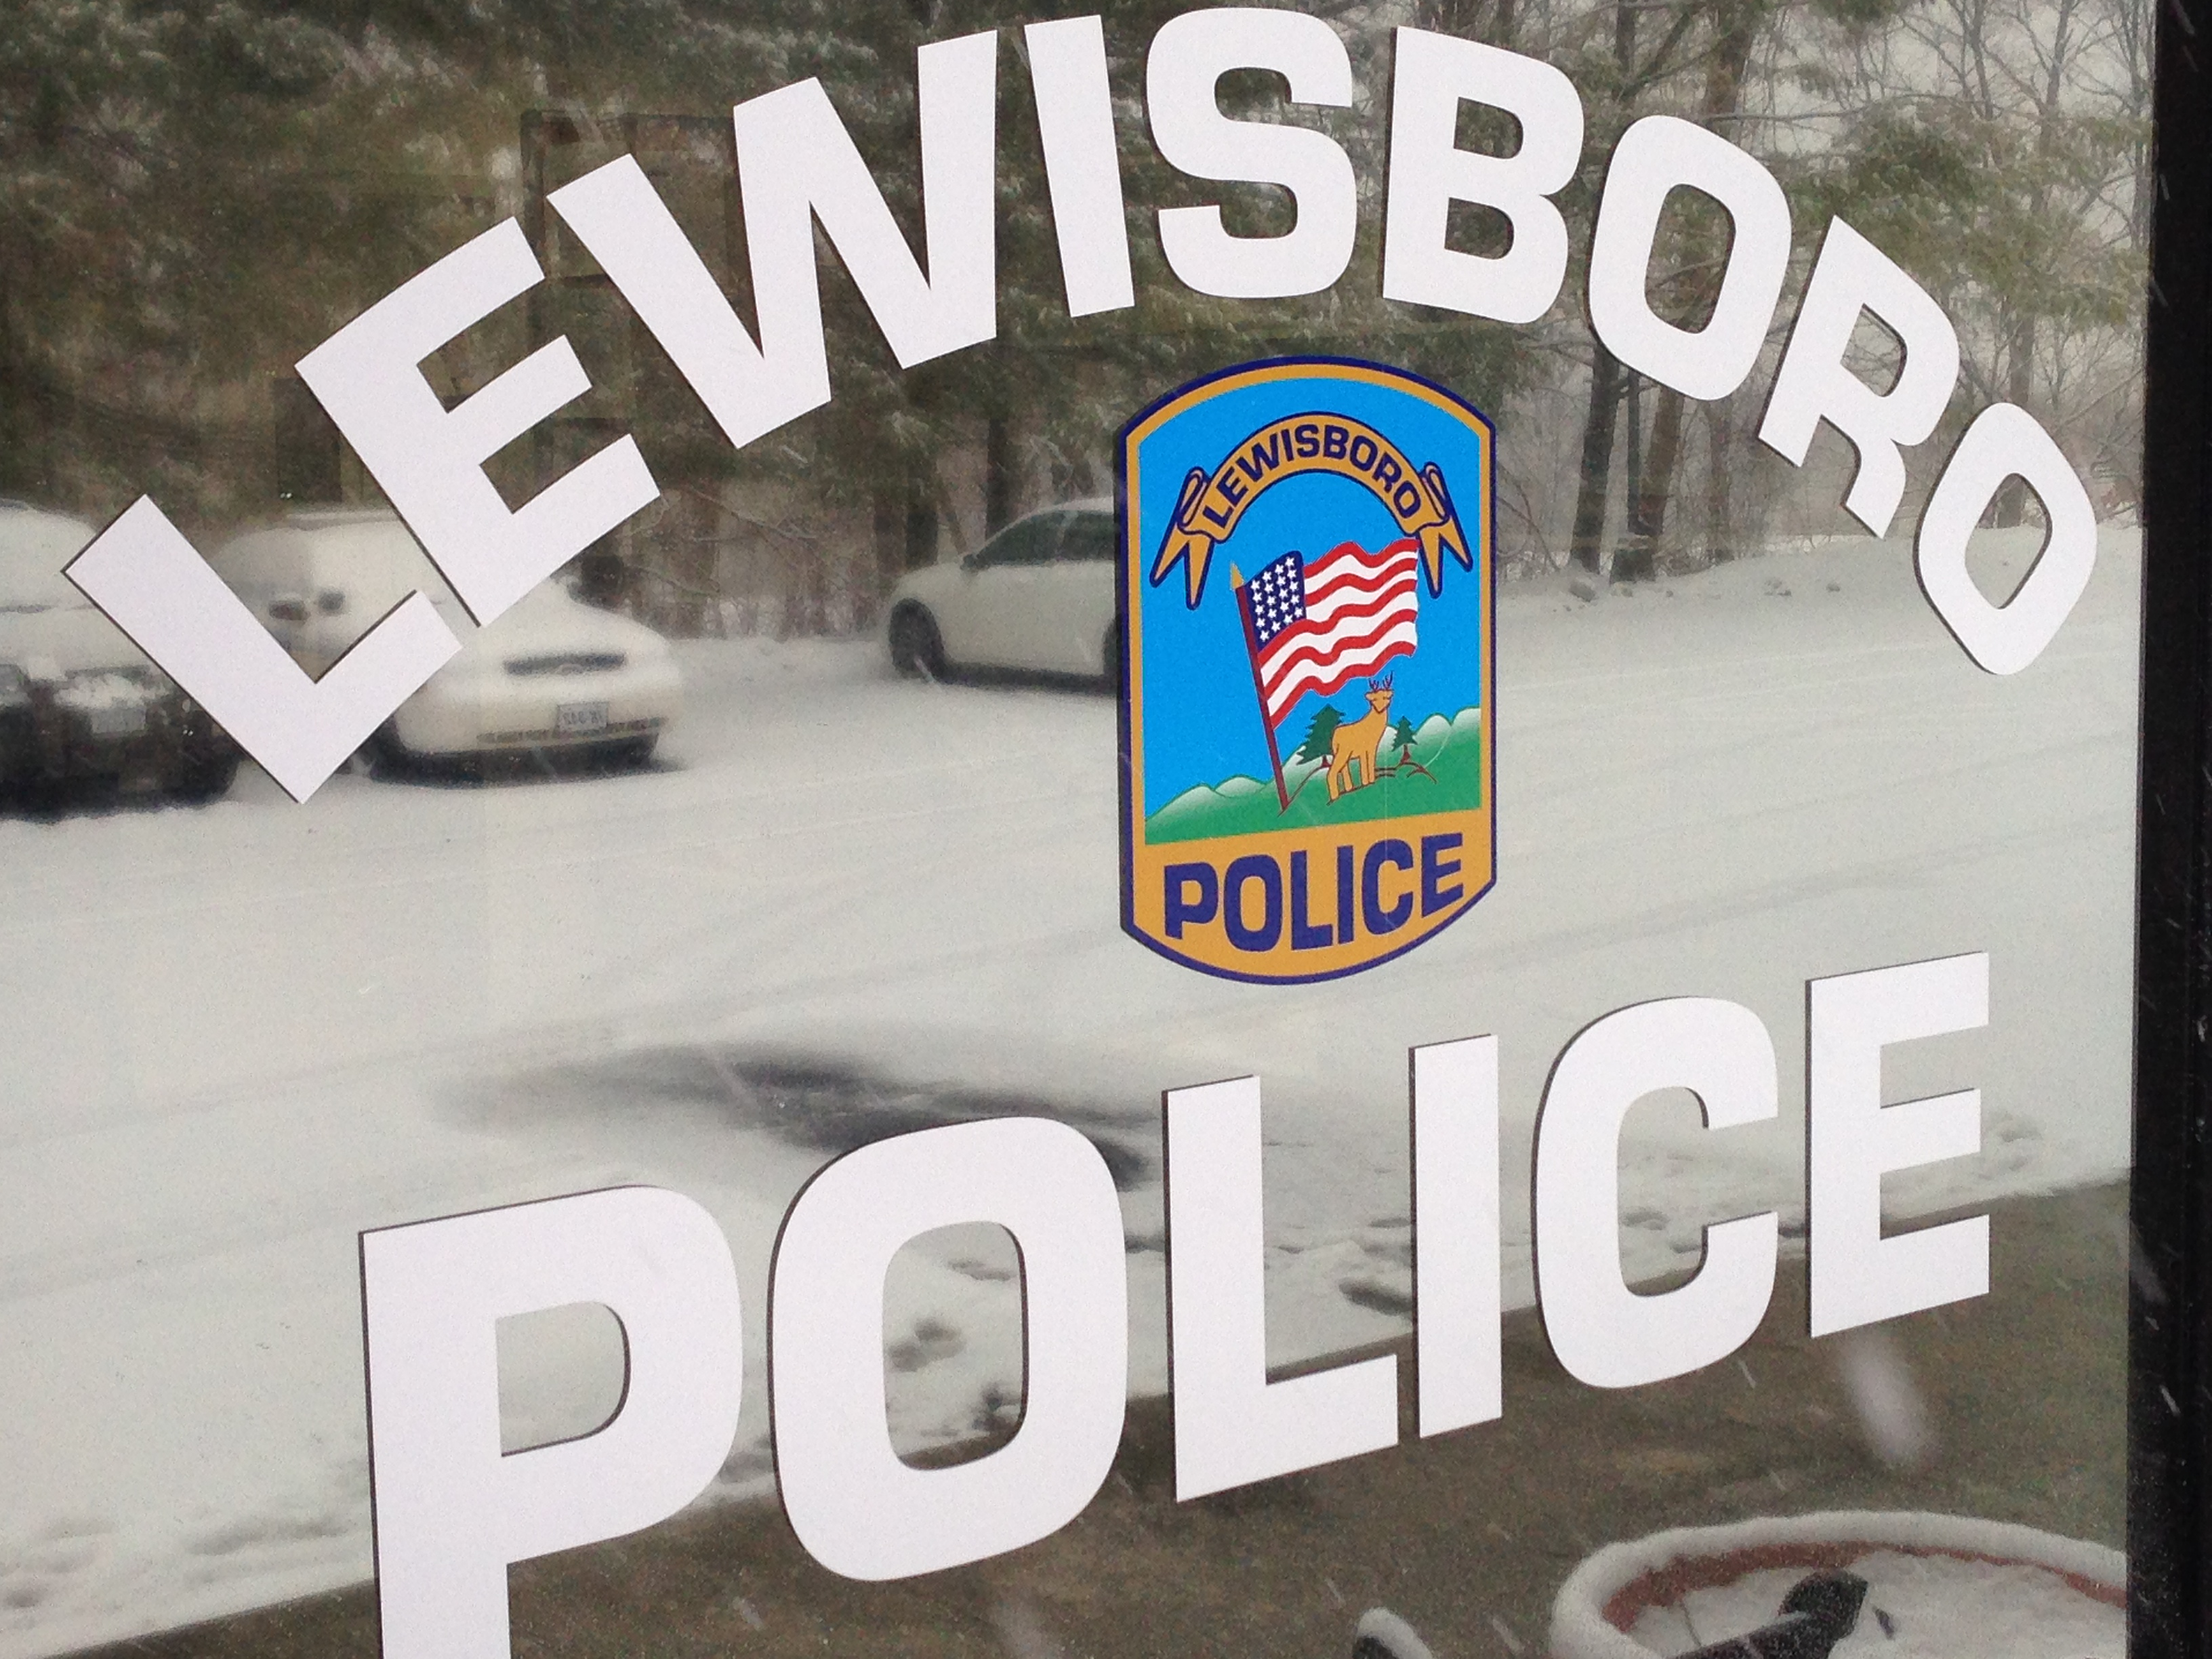 The Lewisboro Police Department is on 20 North Salem Road, Cross River.